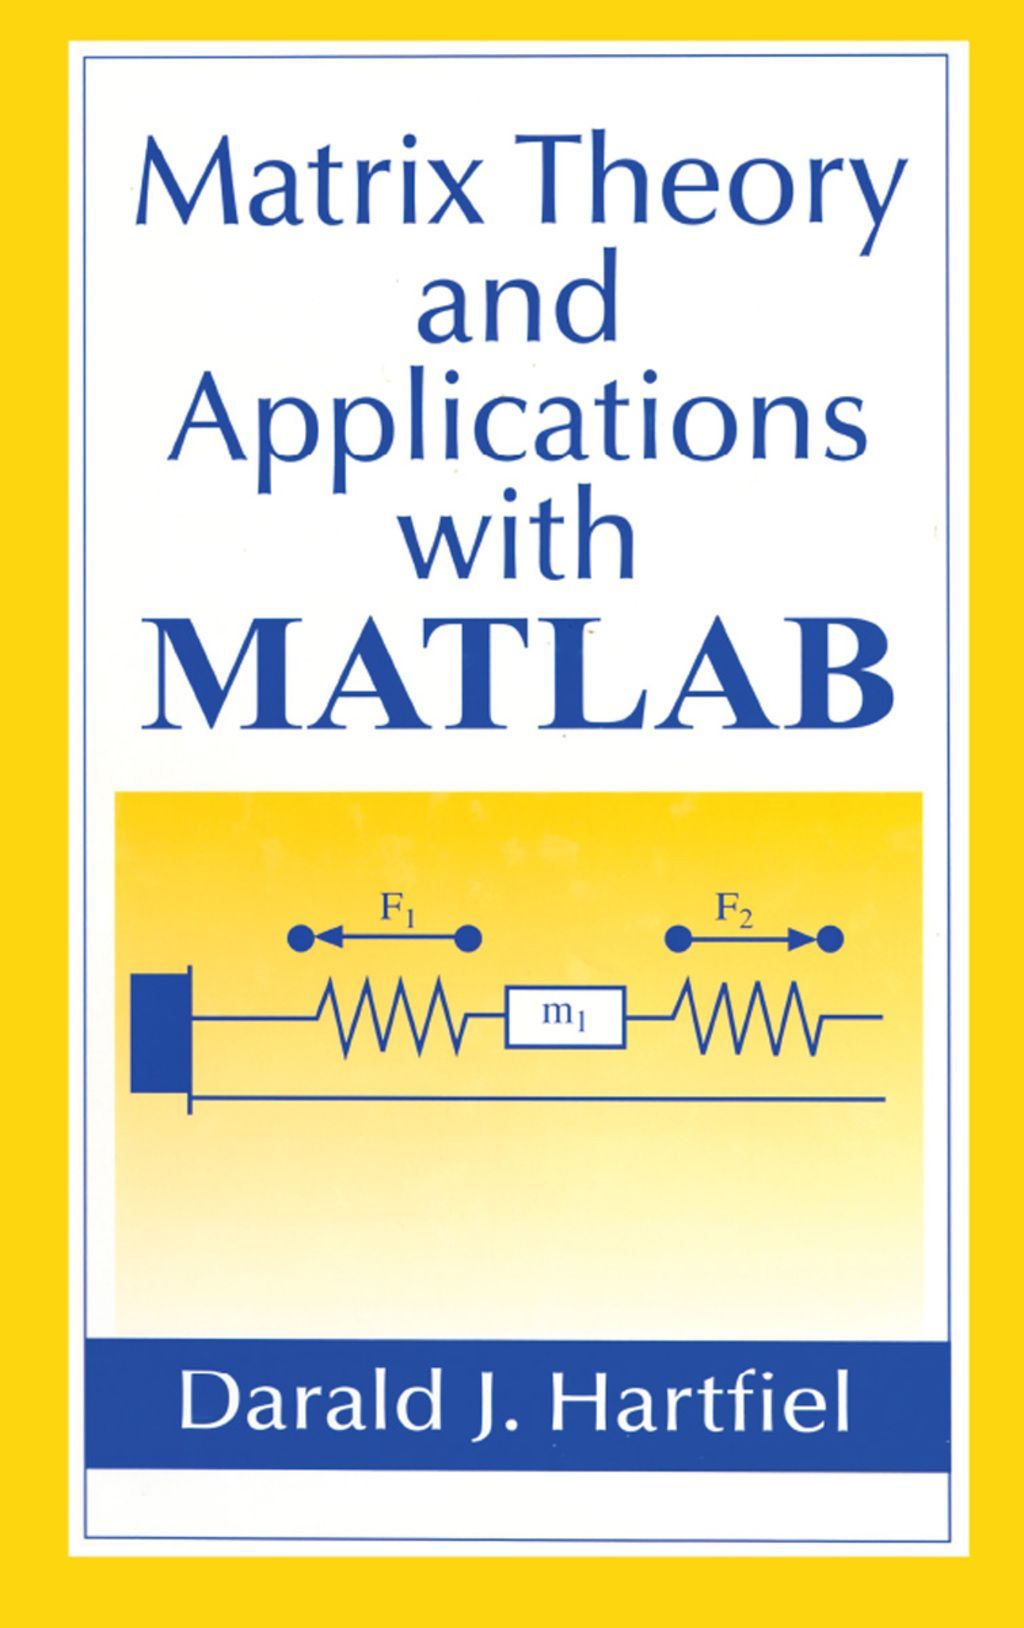 de5b3ae563d6240ed6c35980f5026fad - Matlab And Its Applications In Engineering Free Ebook